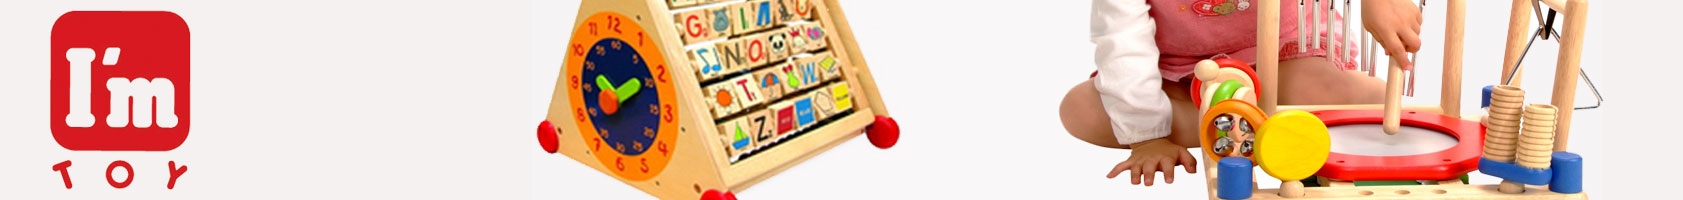 im-toy-educational-wooden-toys.jpg